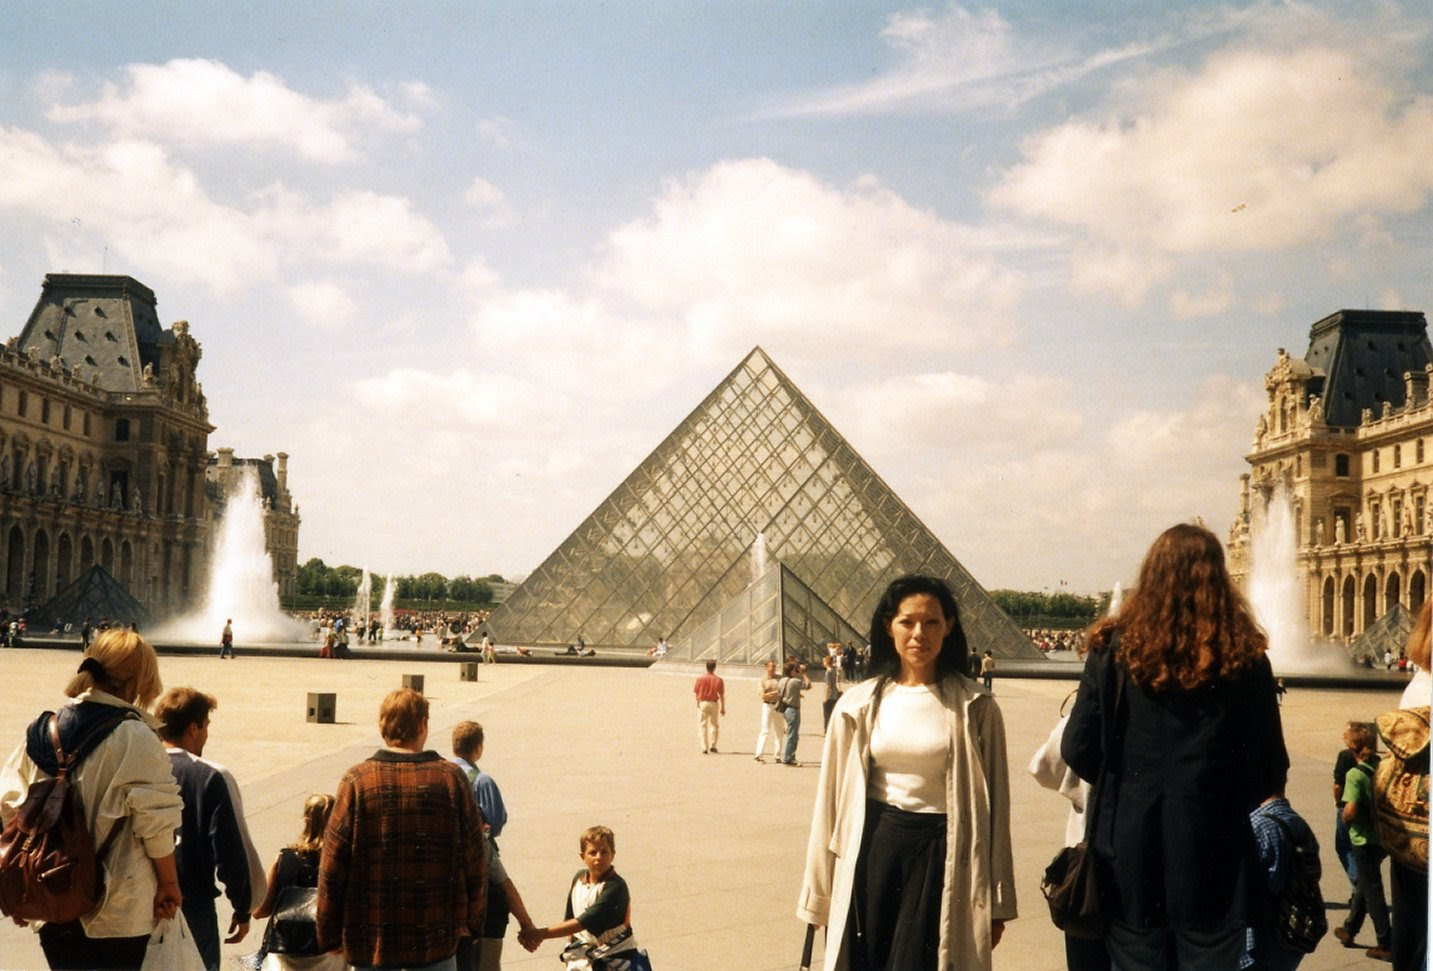 Yes, I look angry…I'm actually exhausted…but about to go into the pyramid to buy tickets to the Louvre Museum!